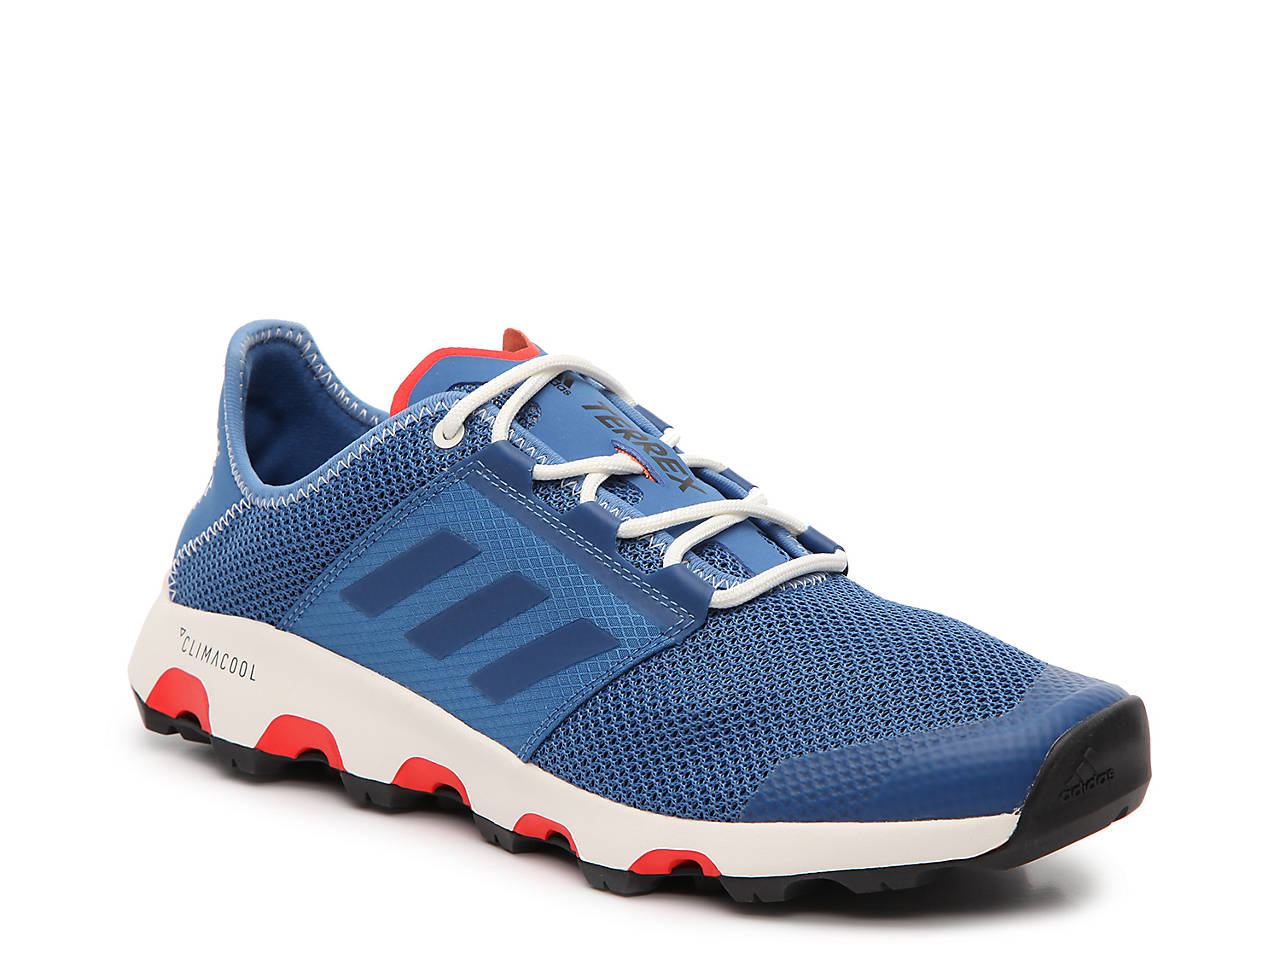 6e189412945 adidas Terrex Climacool Voyager Trail Shoe - Men s Men s Shoes